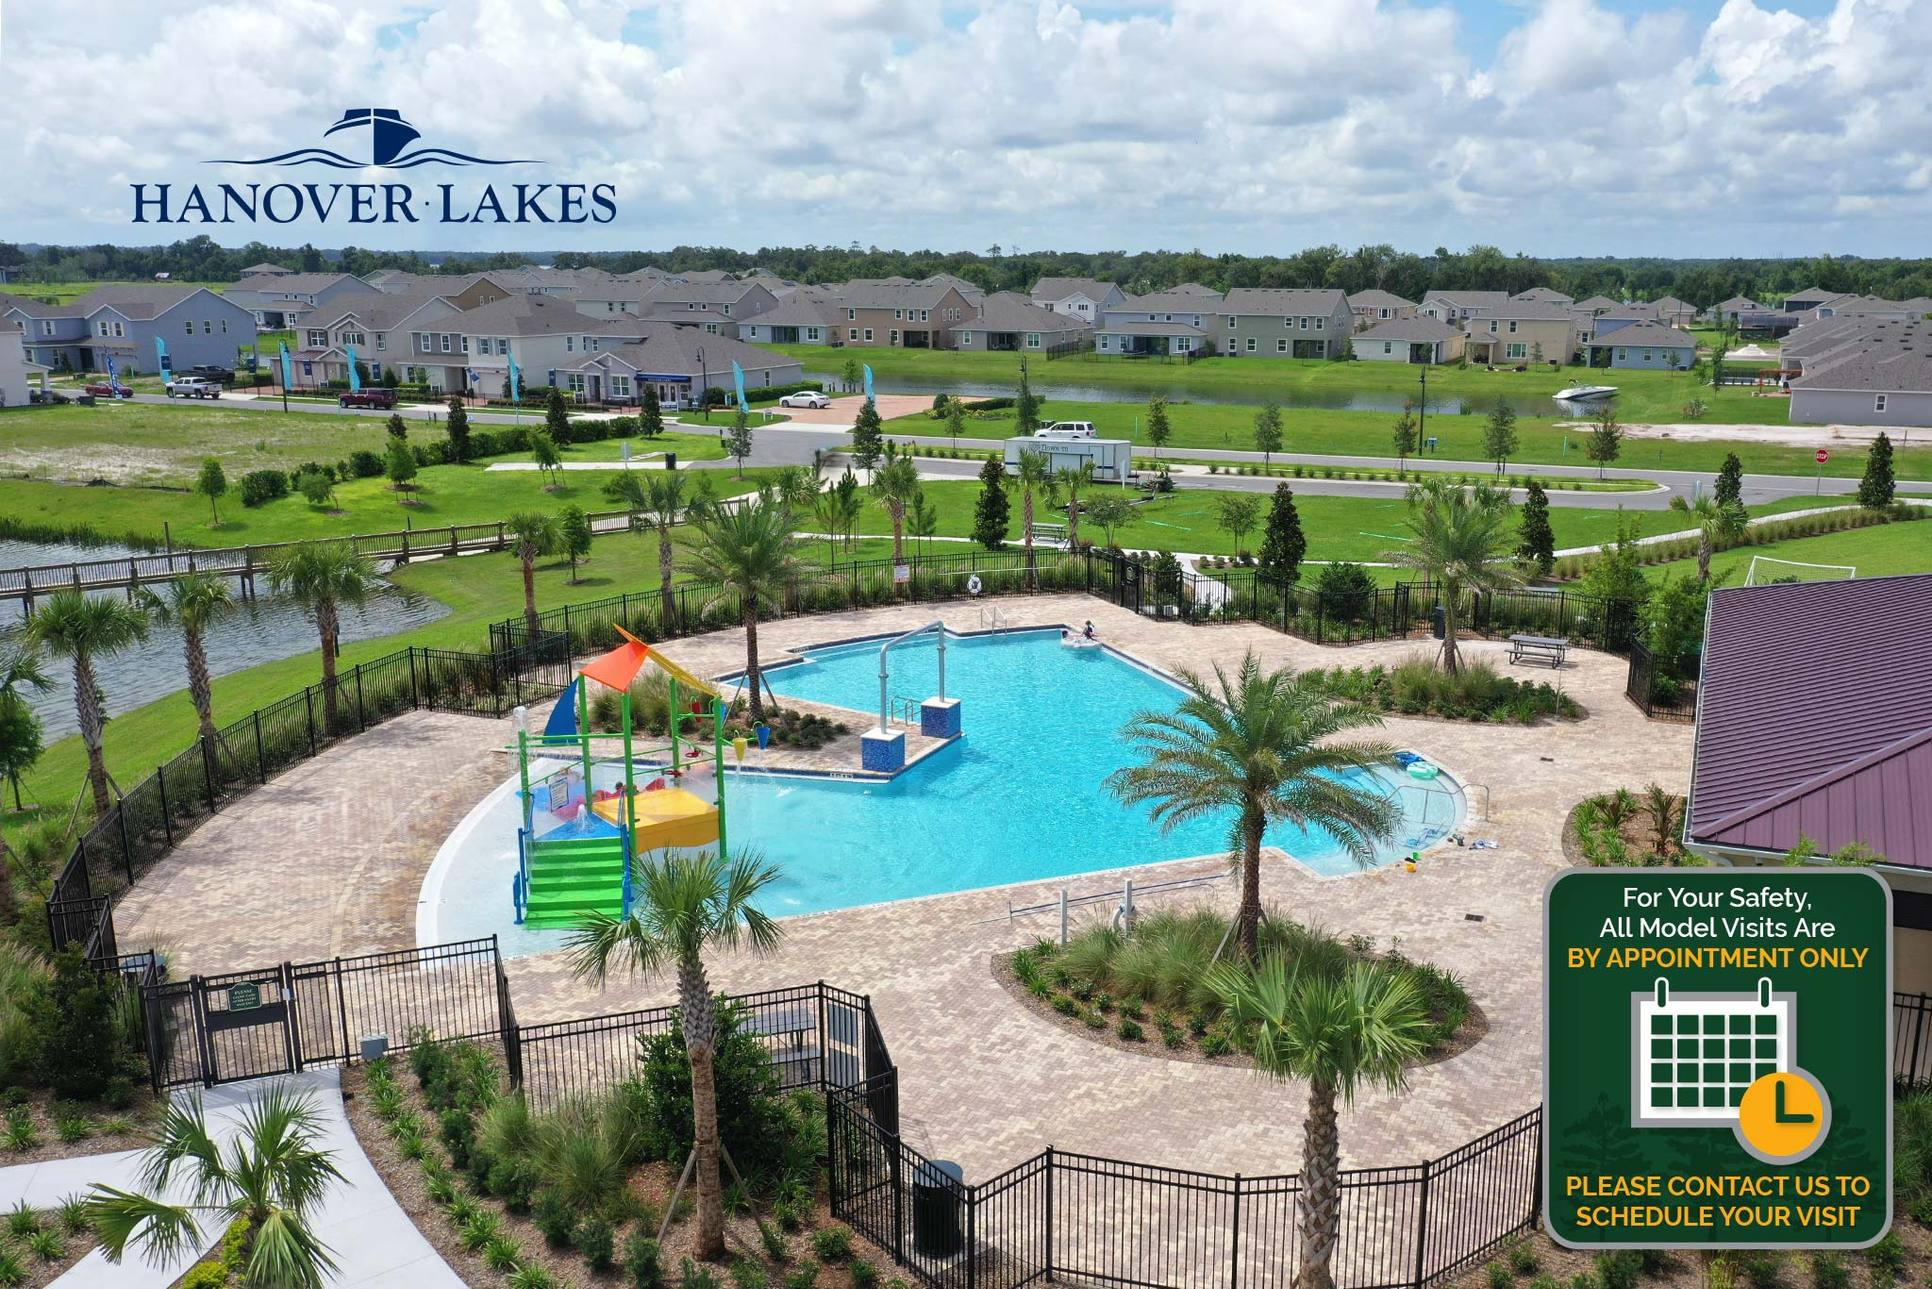 Hanover Lakes Amenity:Community open by Appointment Only